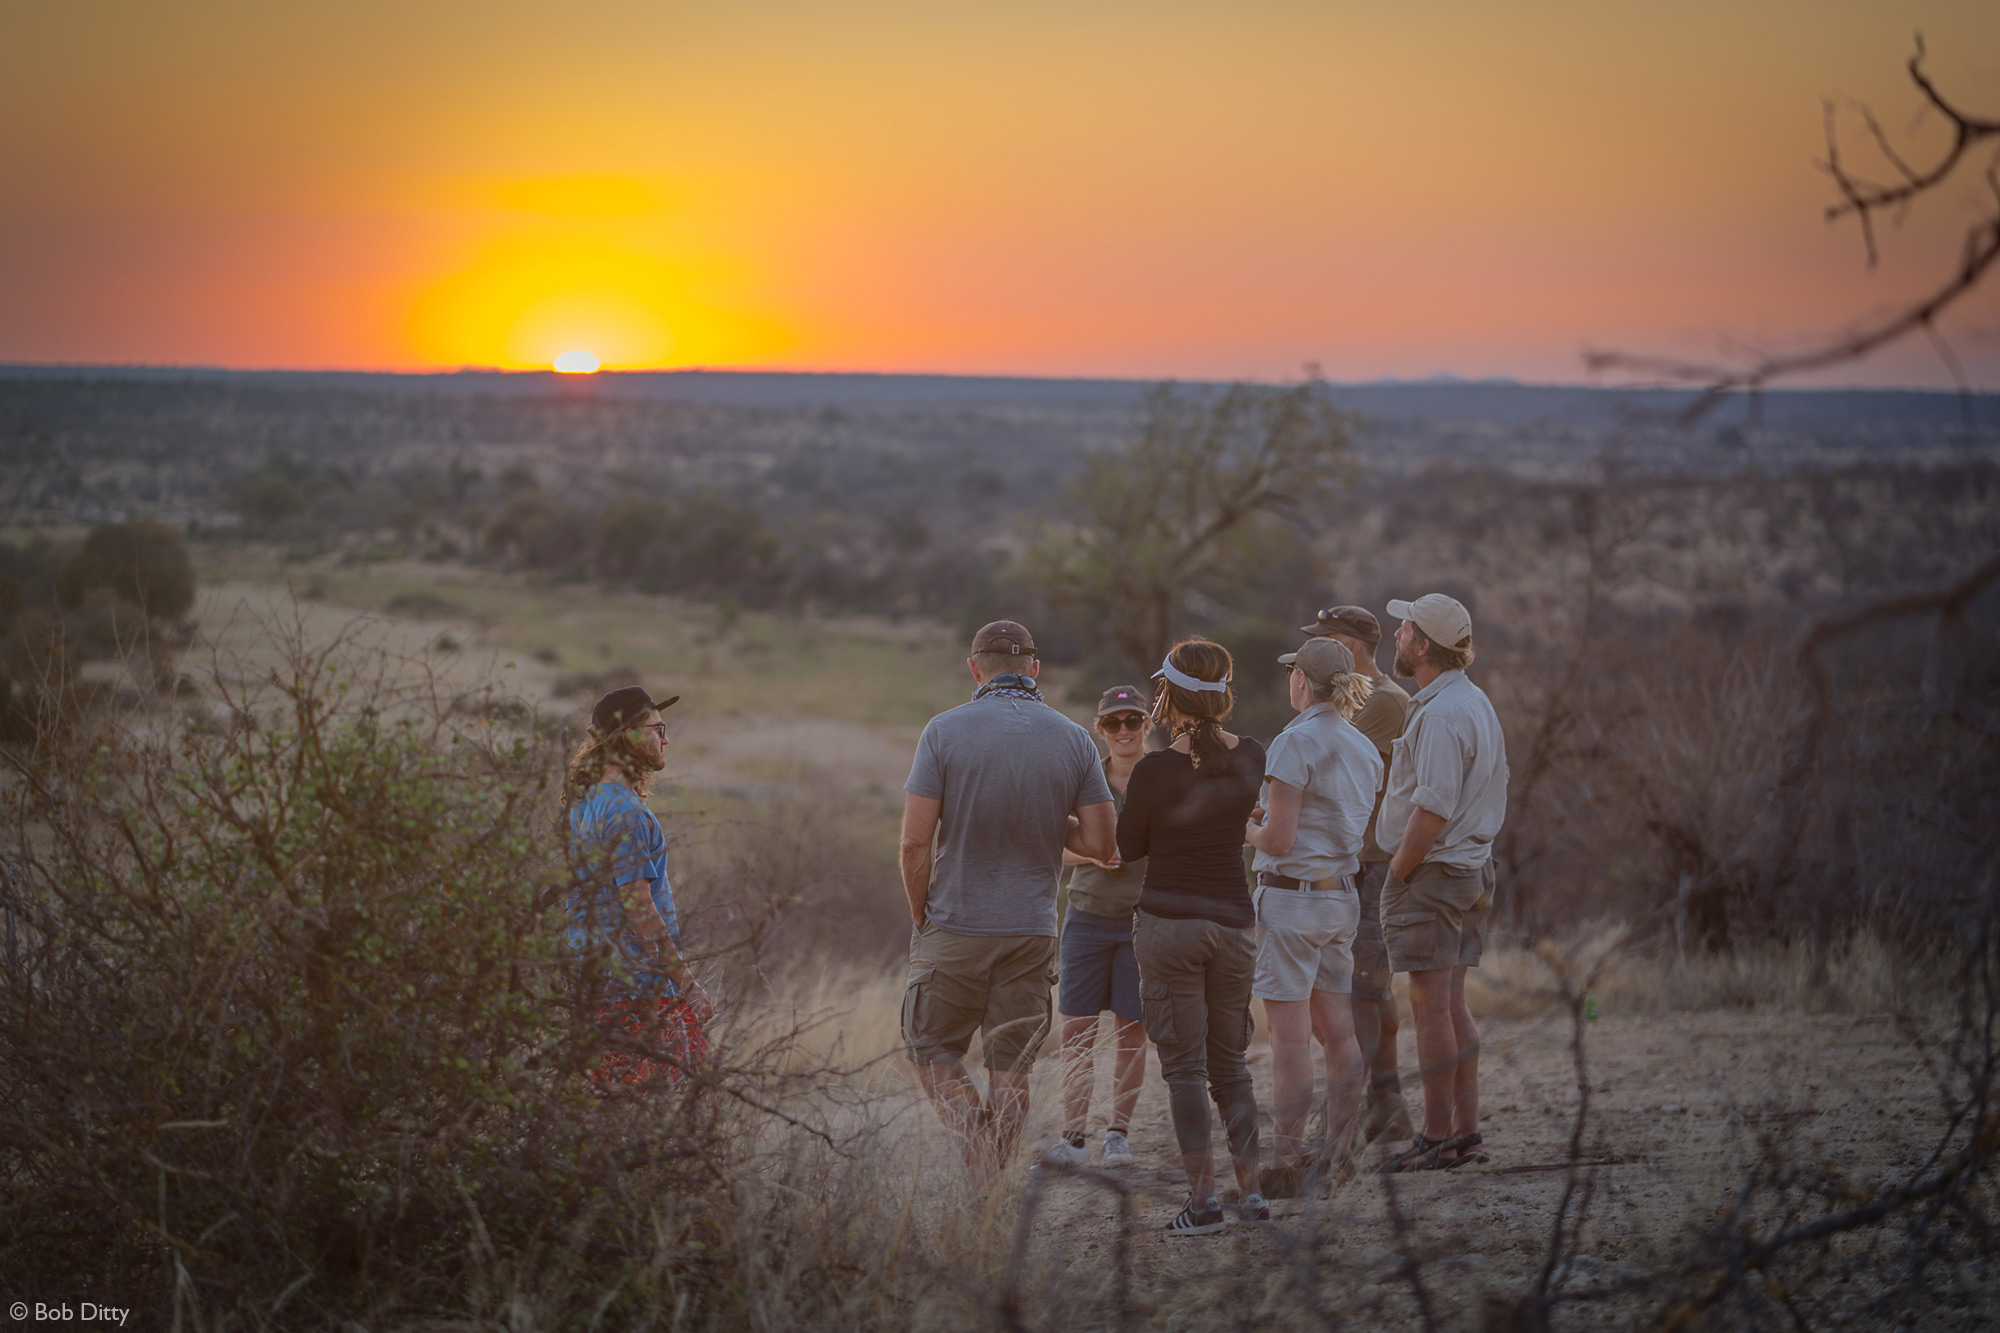 The group at sunset in Klaserie Private Nature Reserve, South Africa